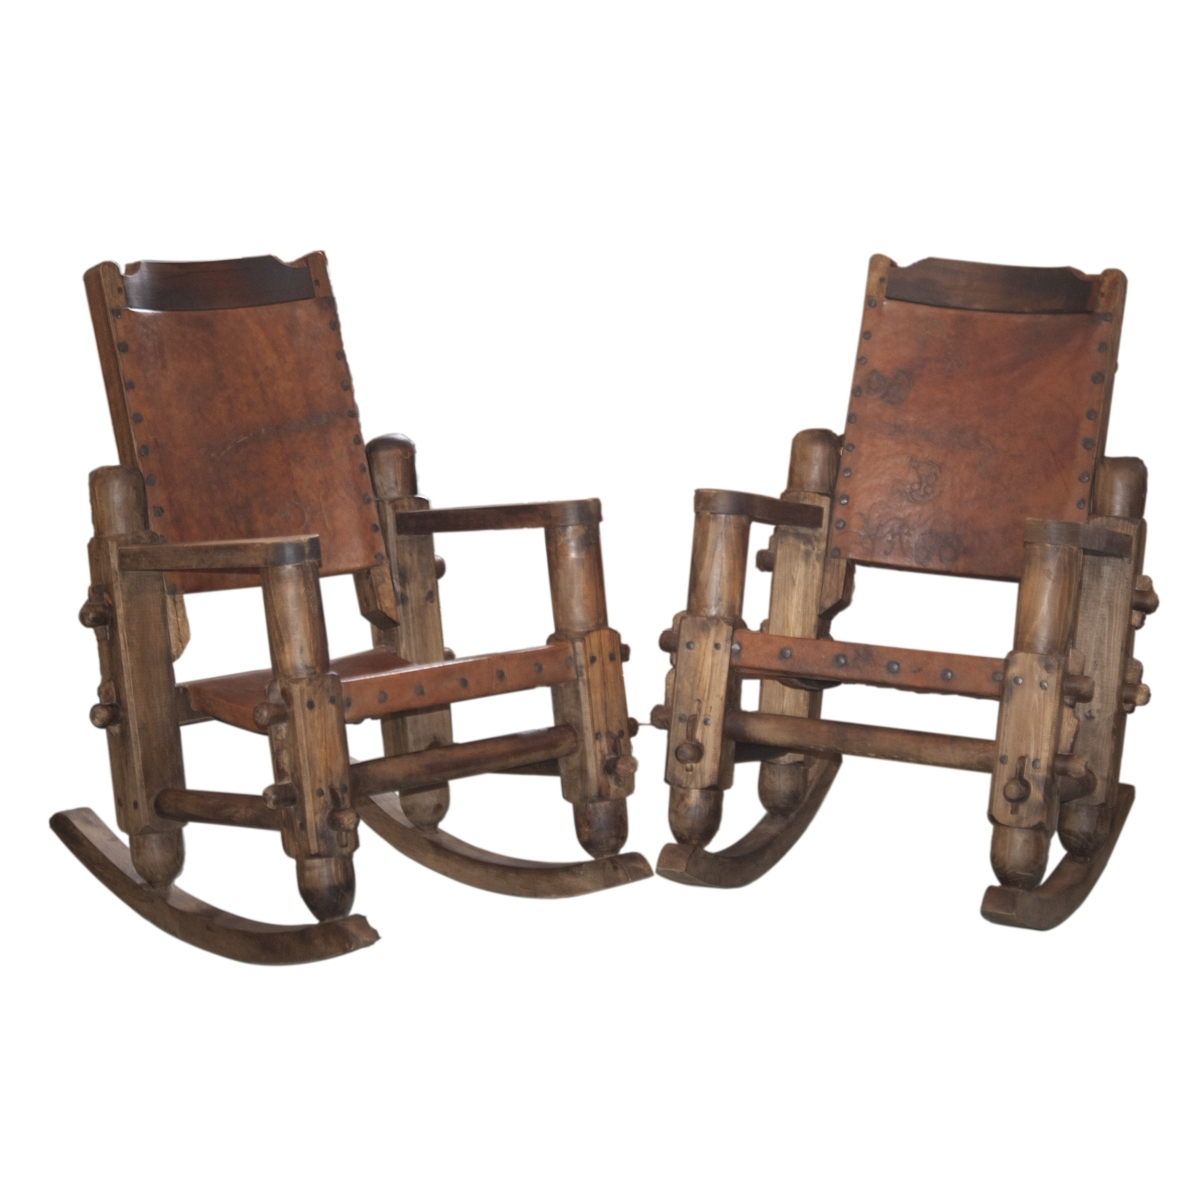 Lot #260: Vintage Mexican Wooden & Leather Rocking Chairs (View 8 of 15)